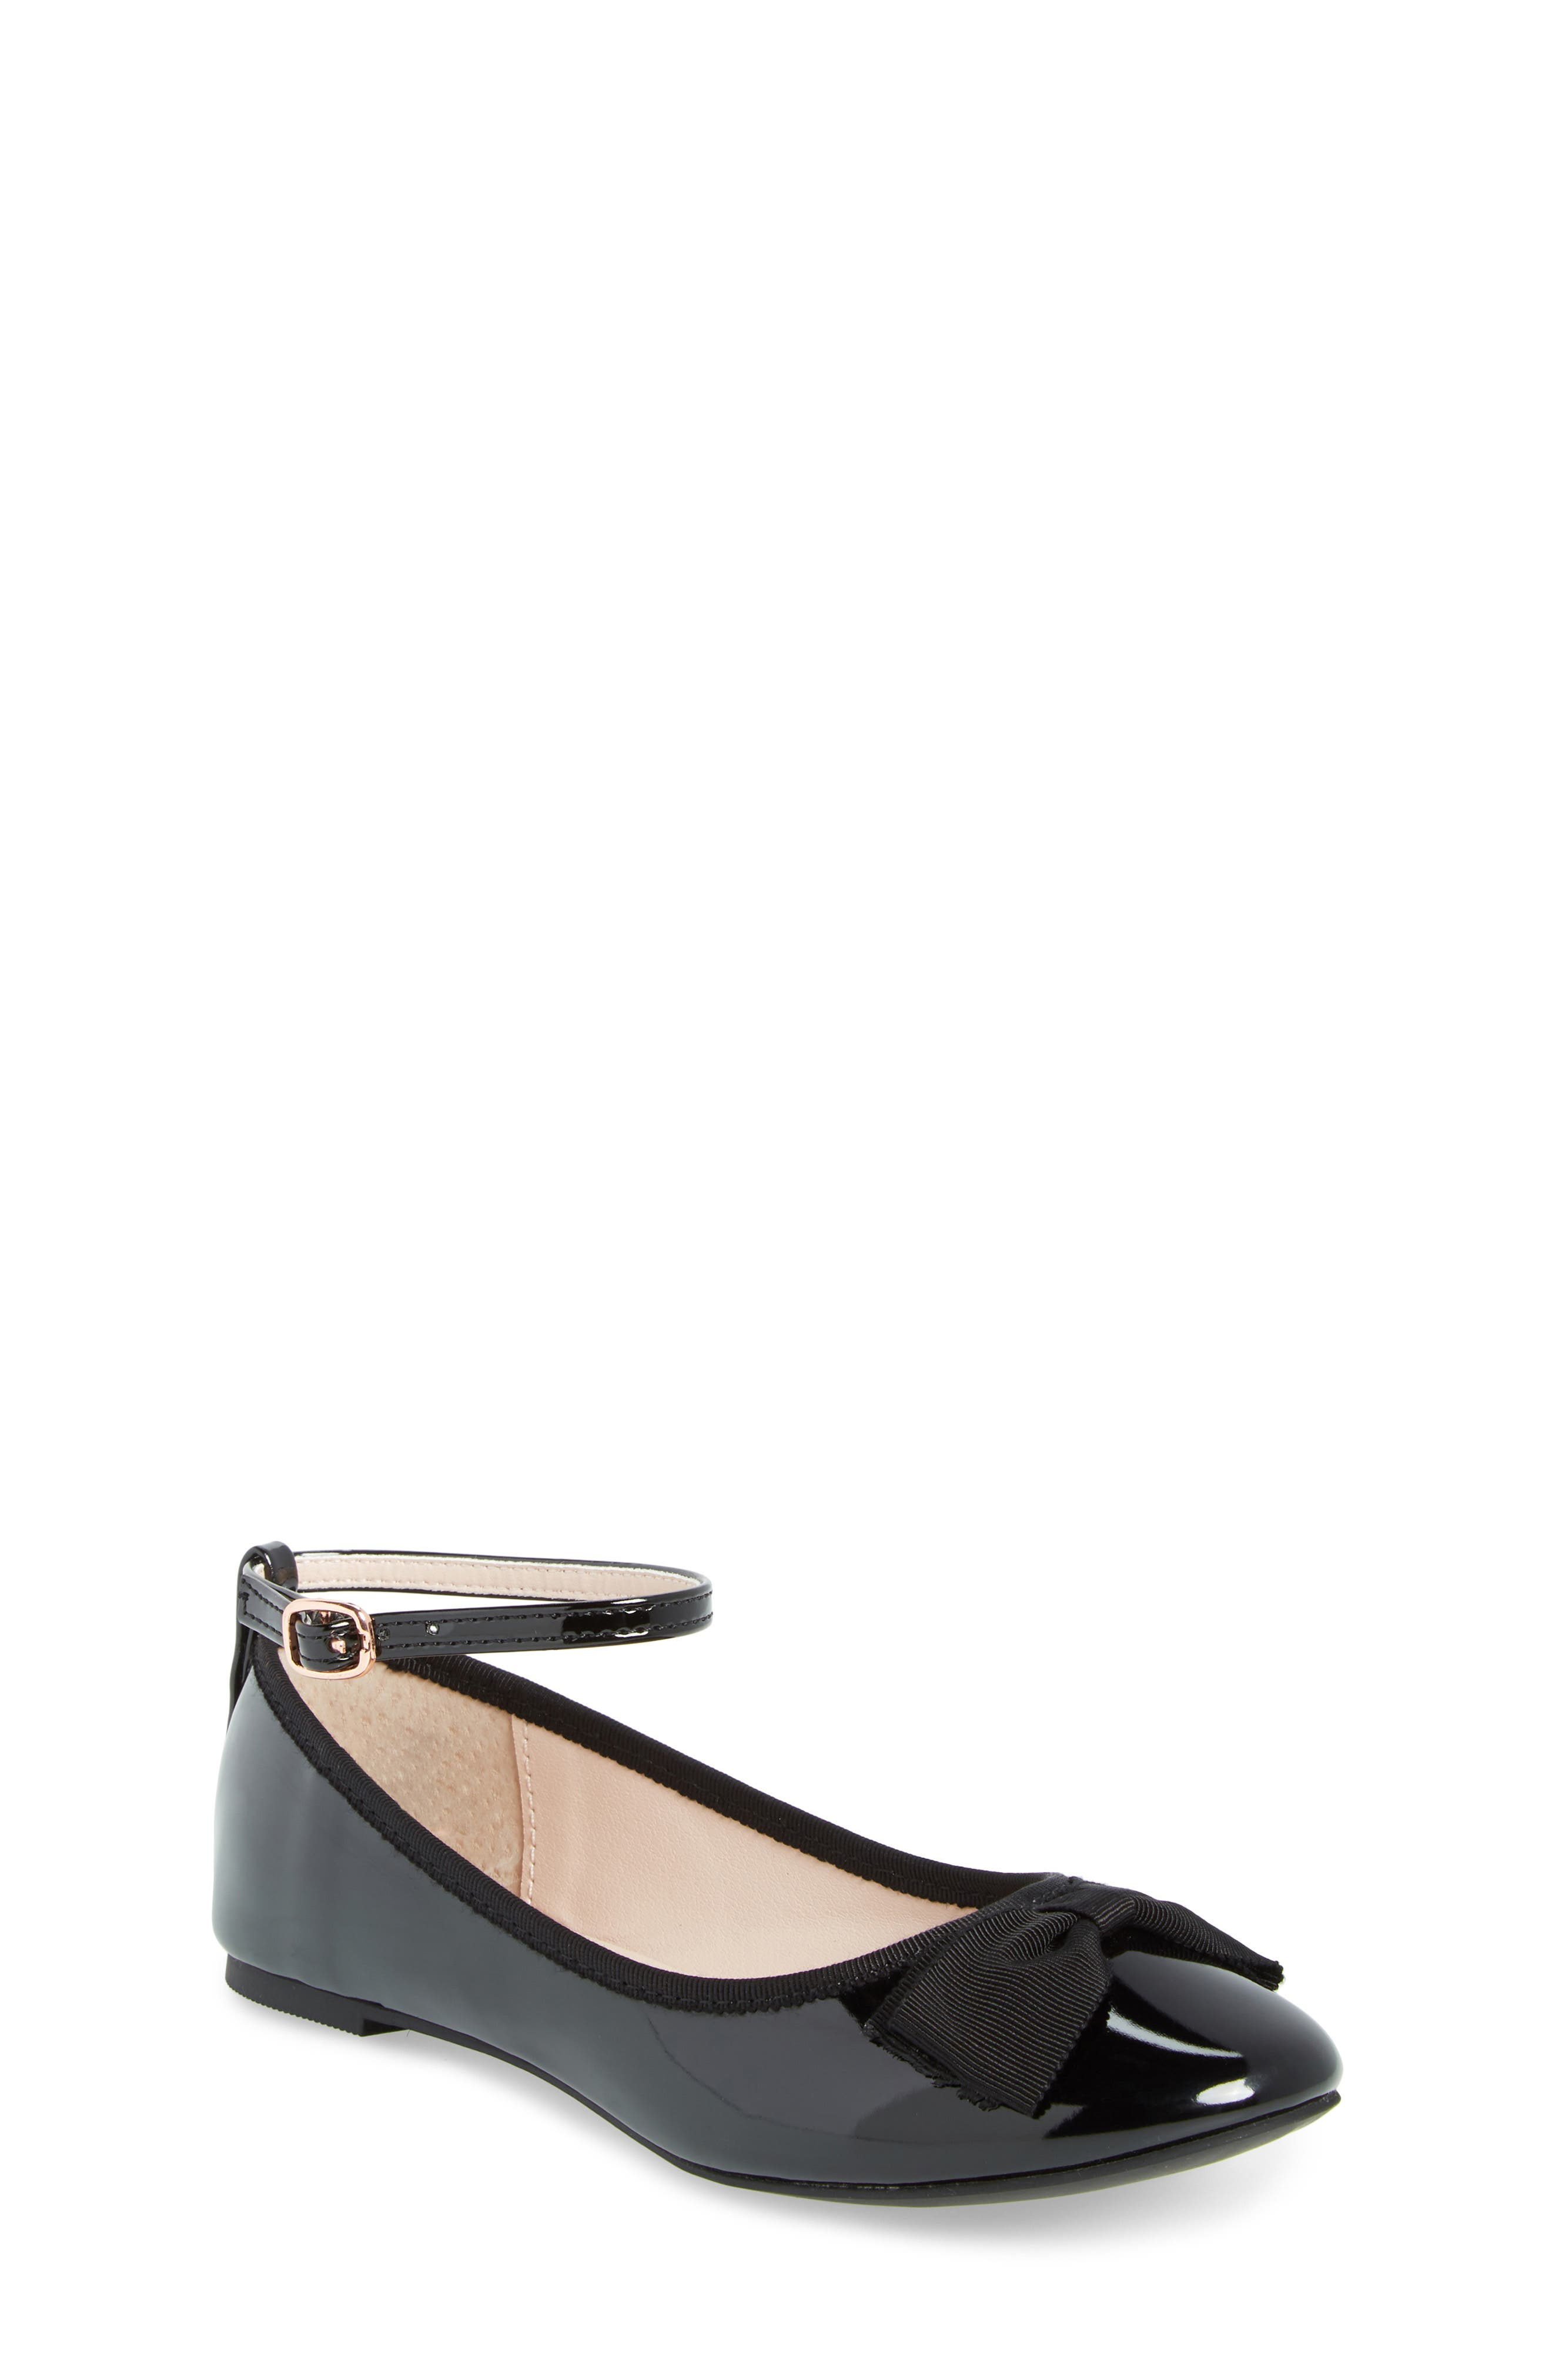 RUBY & BLOOM Pipa Ankle Strap Ballet Flat, Main, color, BLACK FAUX PATENT